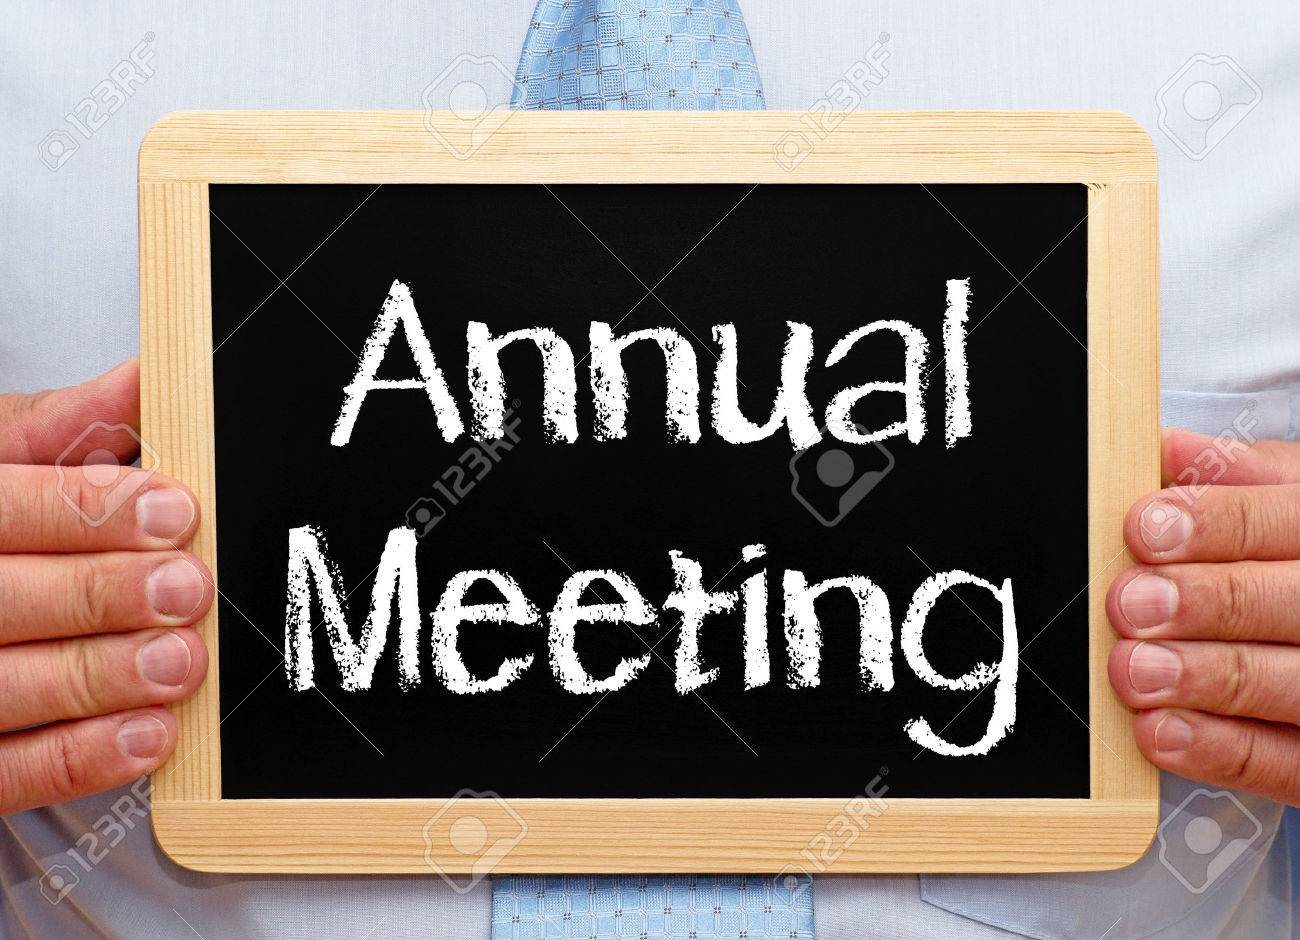 Annual Meeting Stock Photo - 47380676